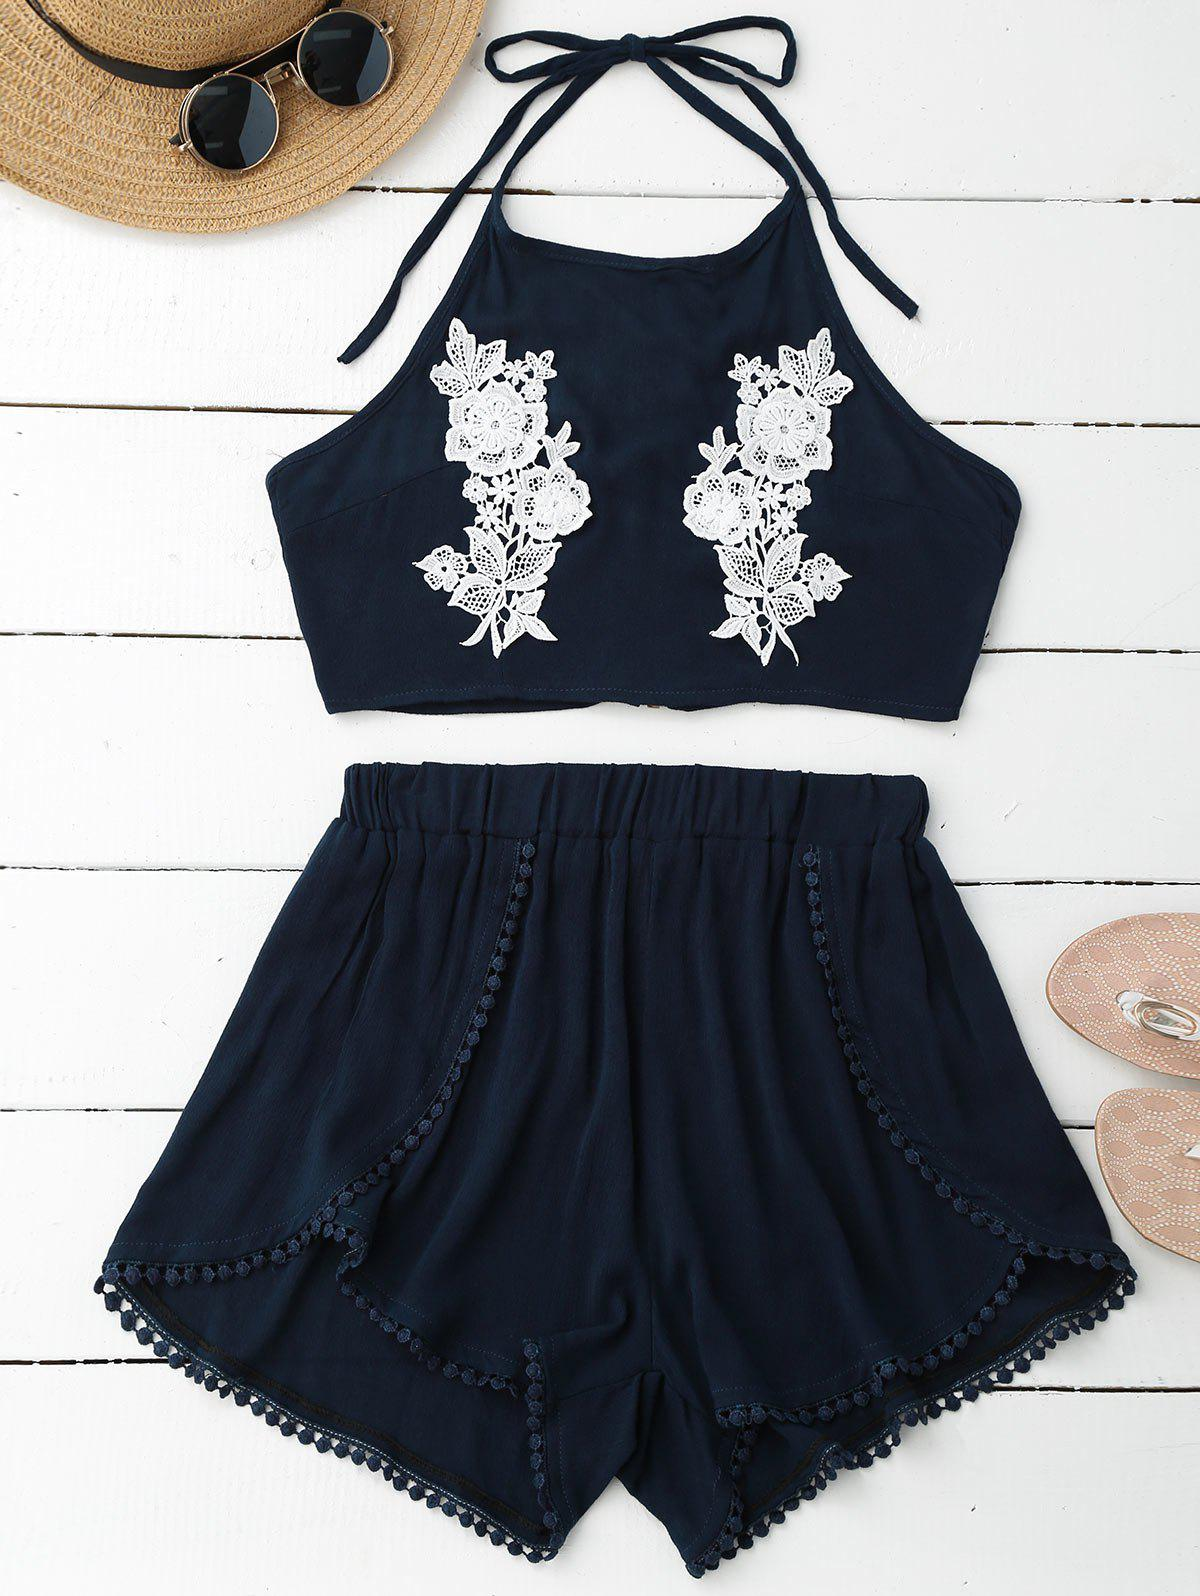 Lace Floral Halter Crop Top and Shorts 211666309